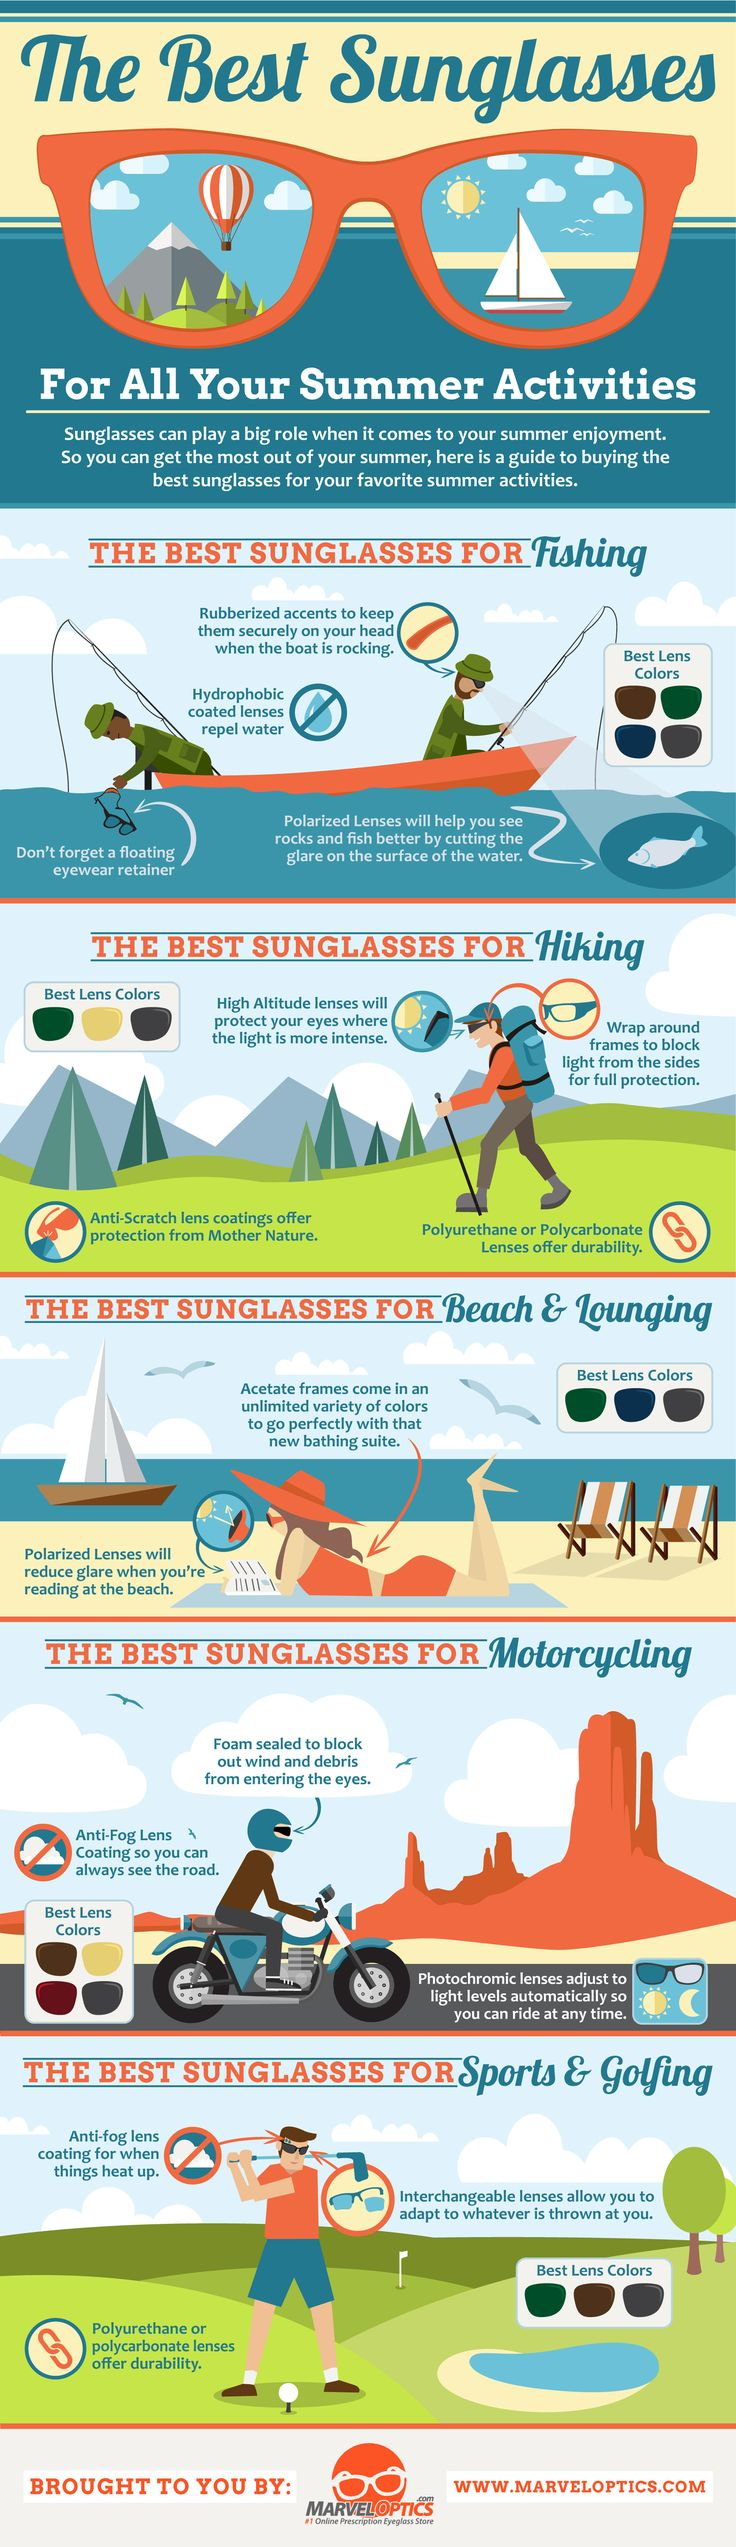 The Best Sunglasses For Summer Activities